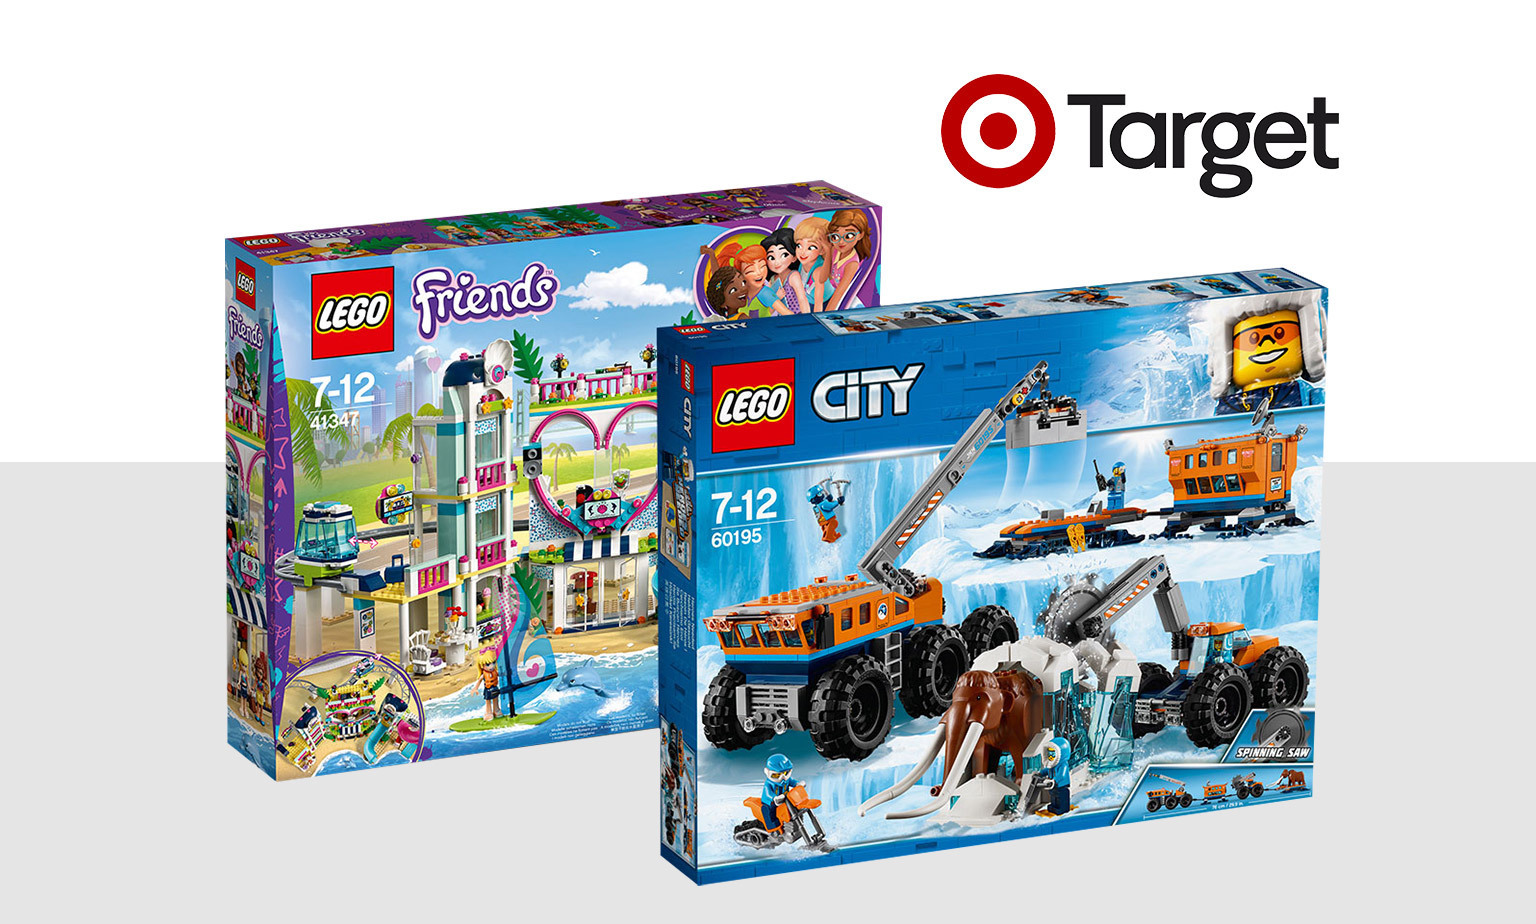 20% off* LEGO Friends and LEGO City Toys